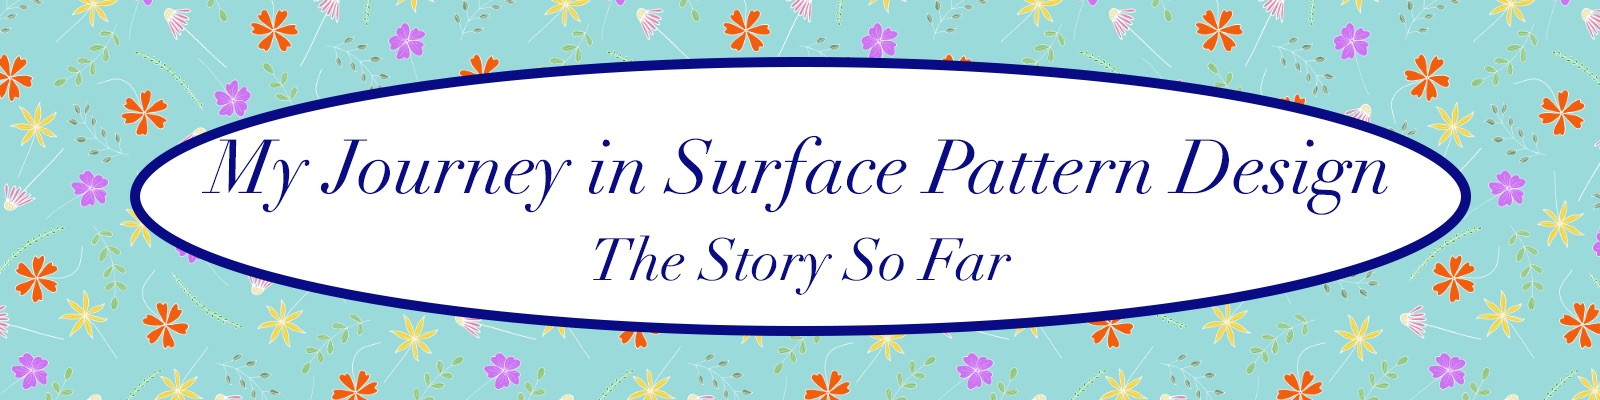 My-Journey-in-surface-pattern-design-blog-post-title